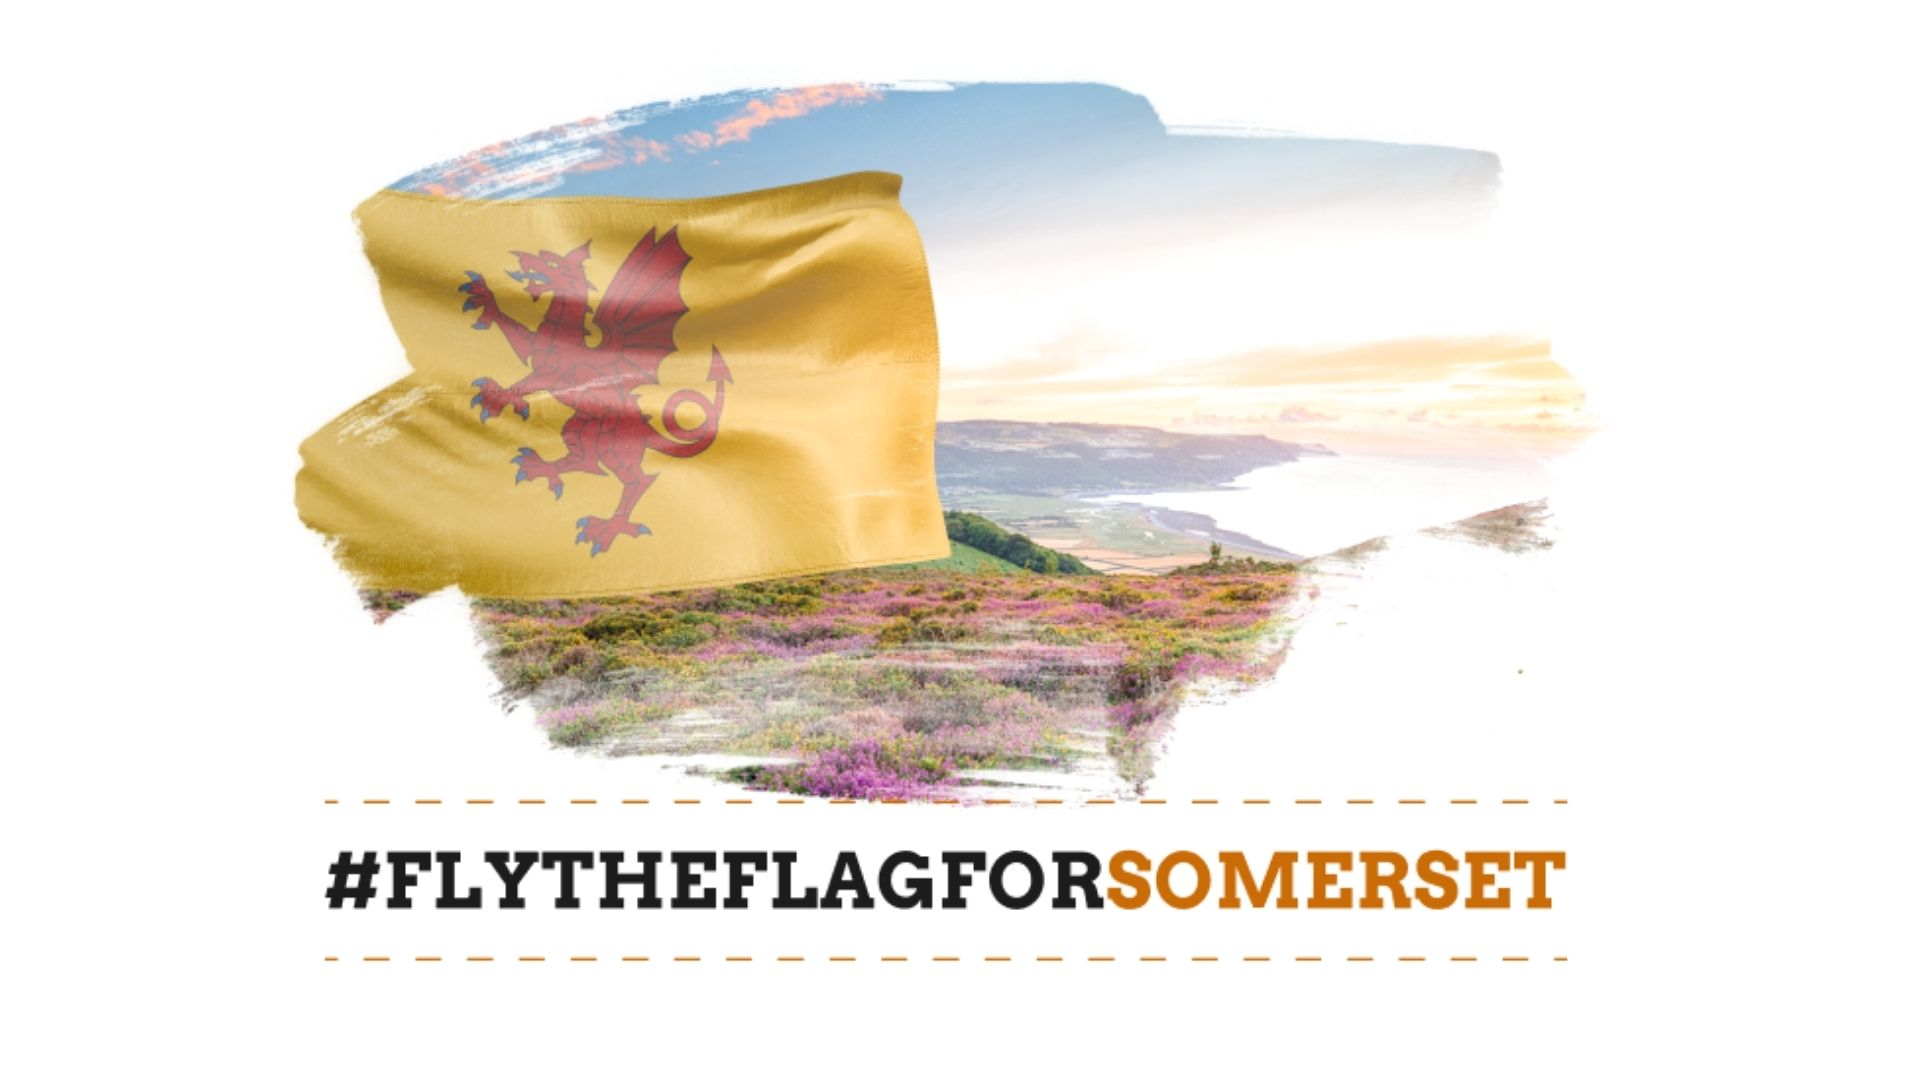 Picture of the Somerset flag and a country background